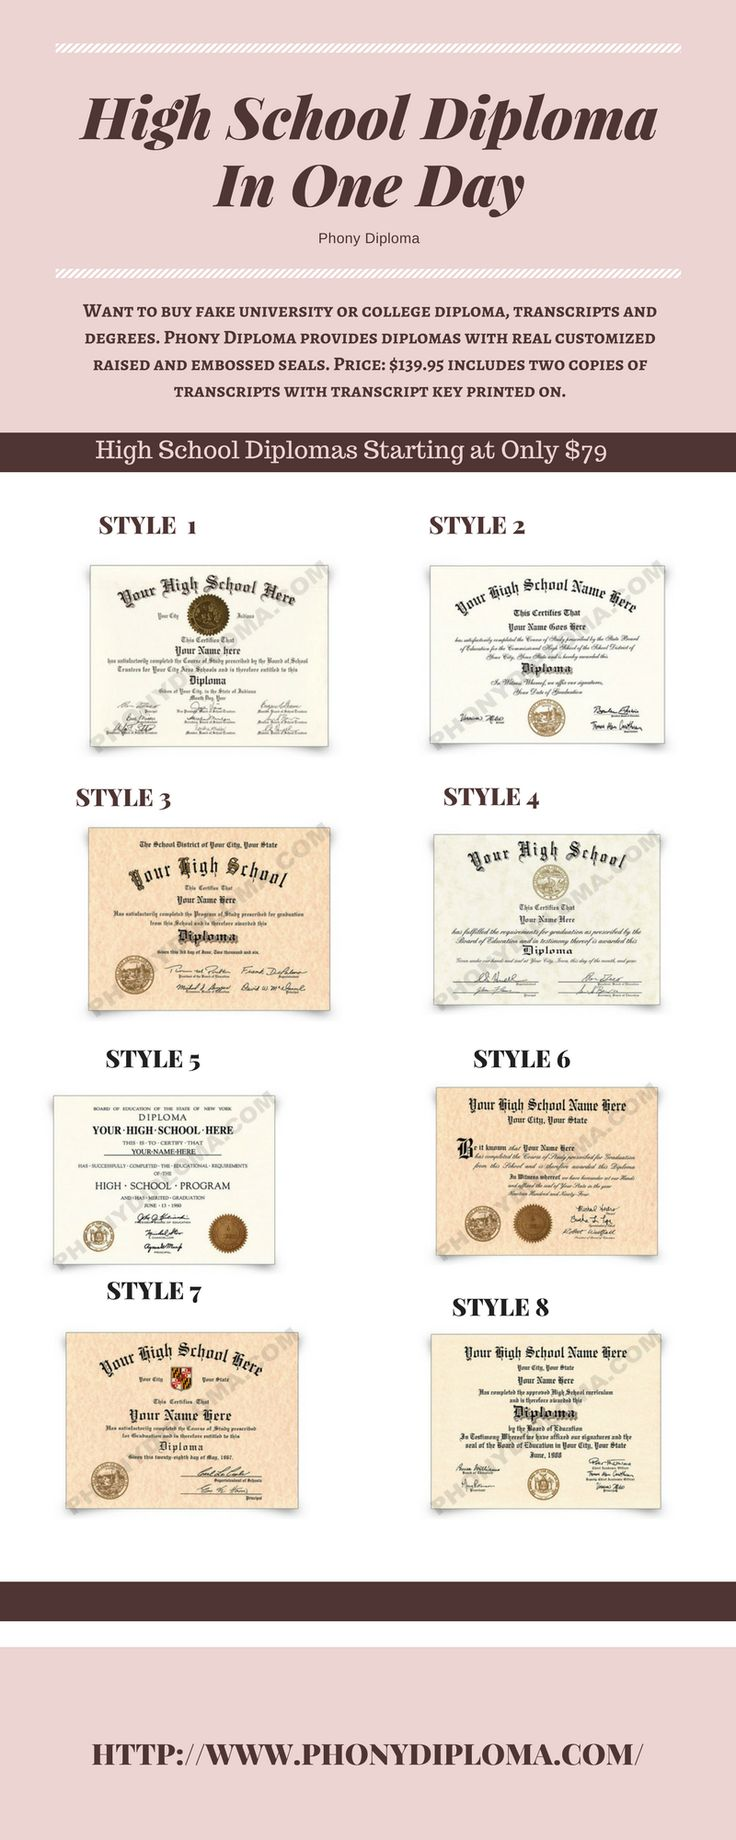 Buy fake college/university diploma, degree, transcripts and certificates with real customized raised and embossed seals. Phony Diploma is the brand you can trust. You need it fast so we ship it fast.